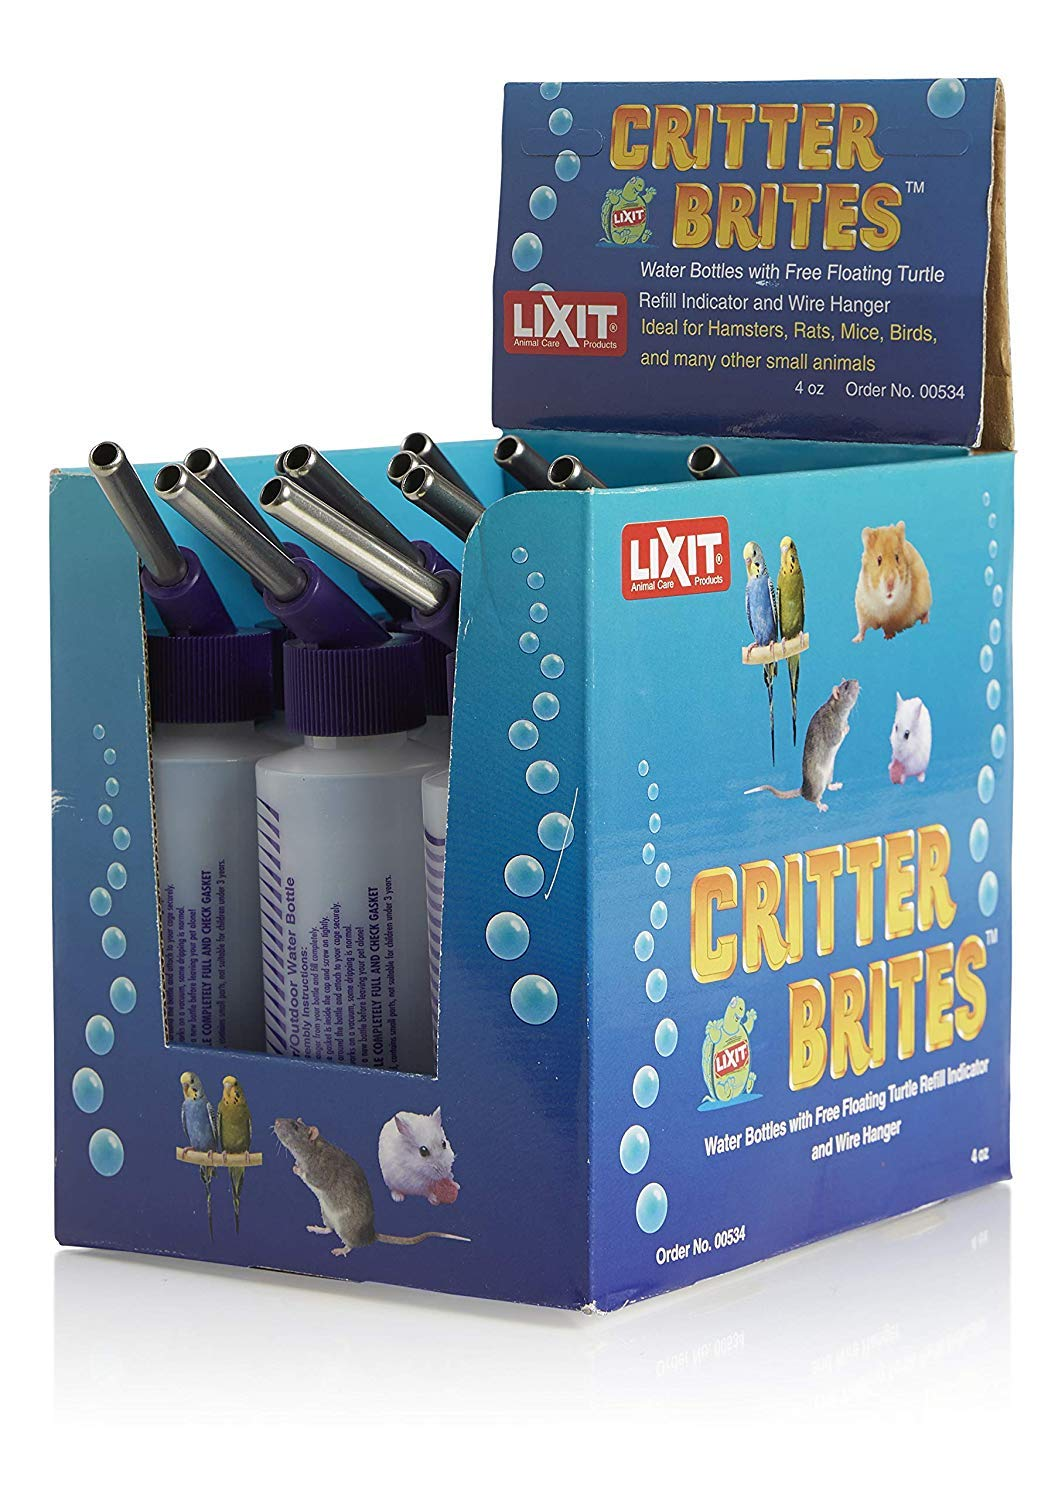 Lixit 12-Pack Critter Brites Small Animal Water Bottles, 4 Oz, Day Glow by Lixit